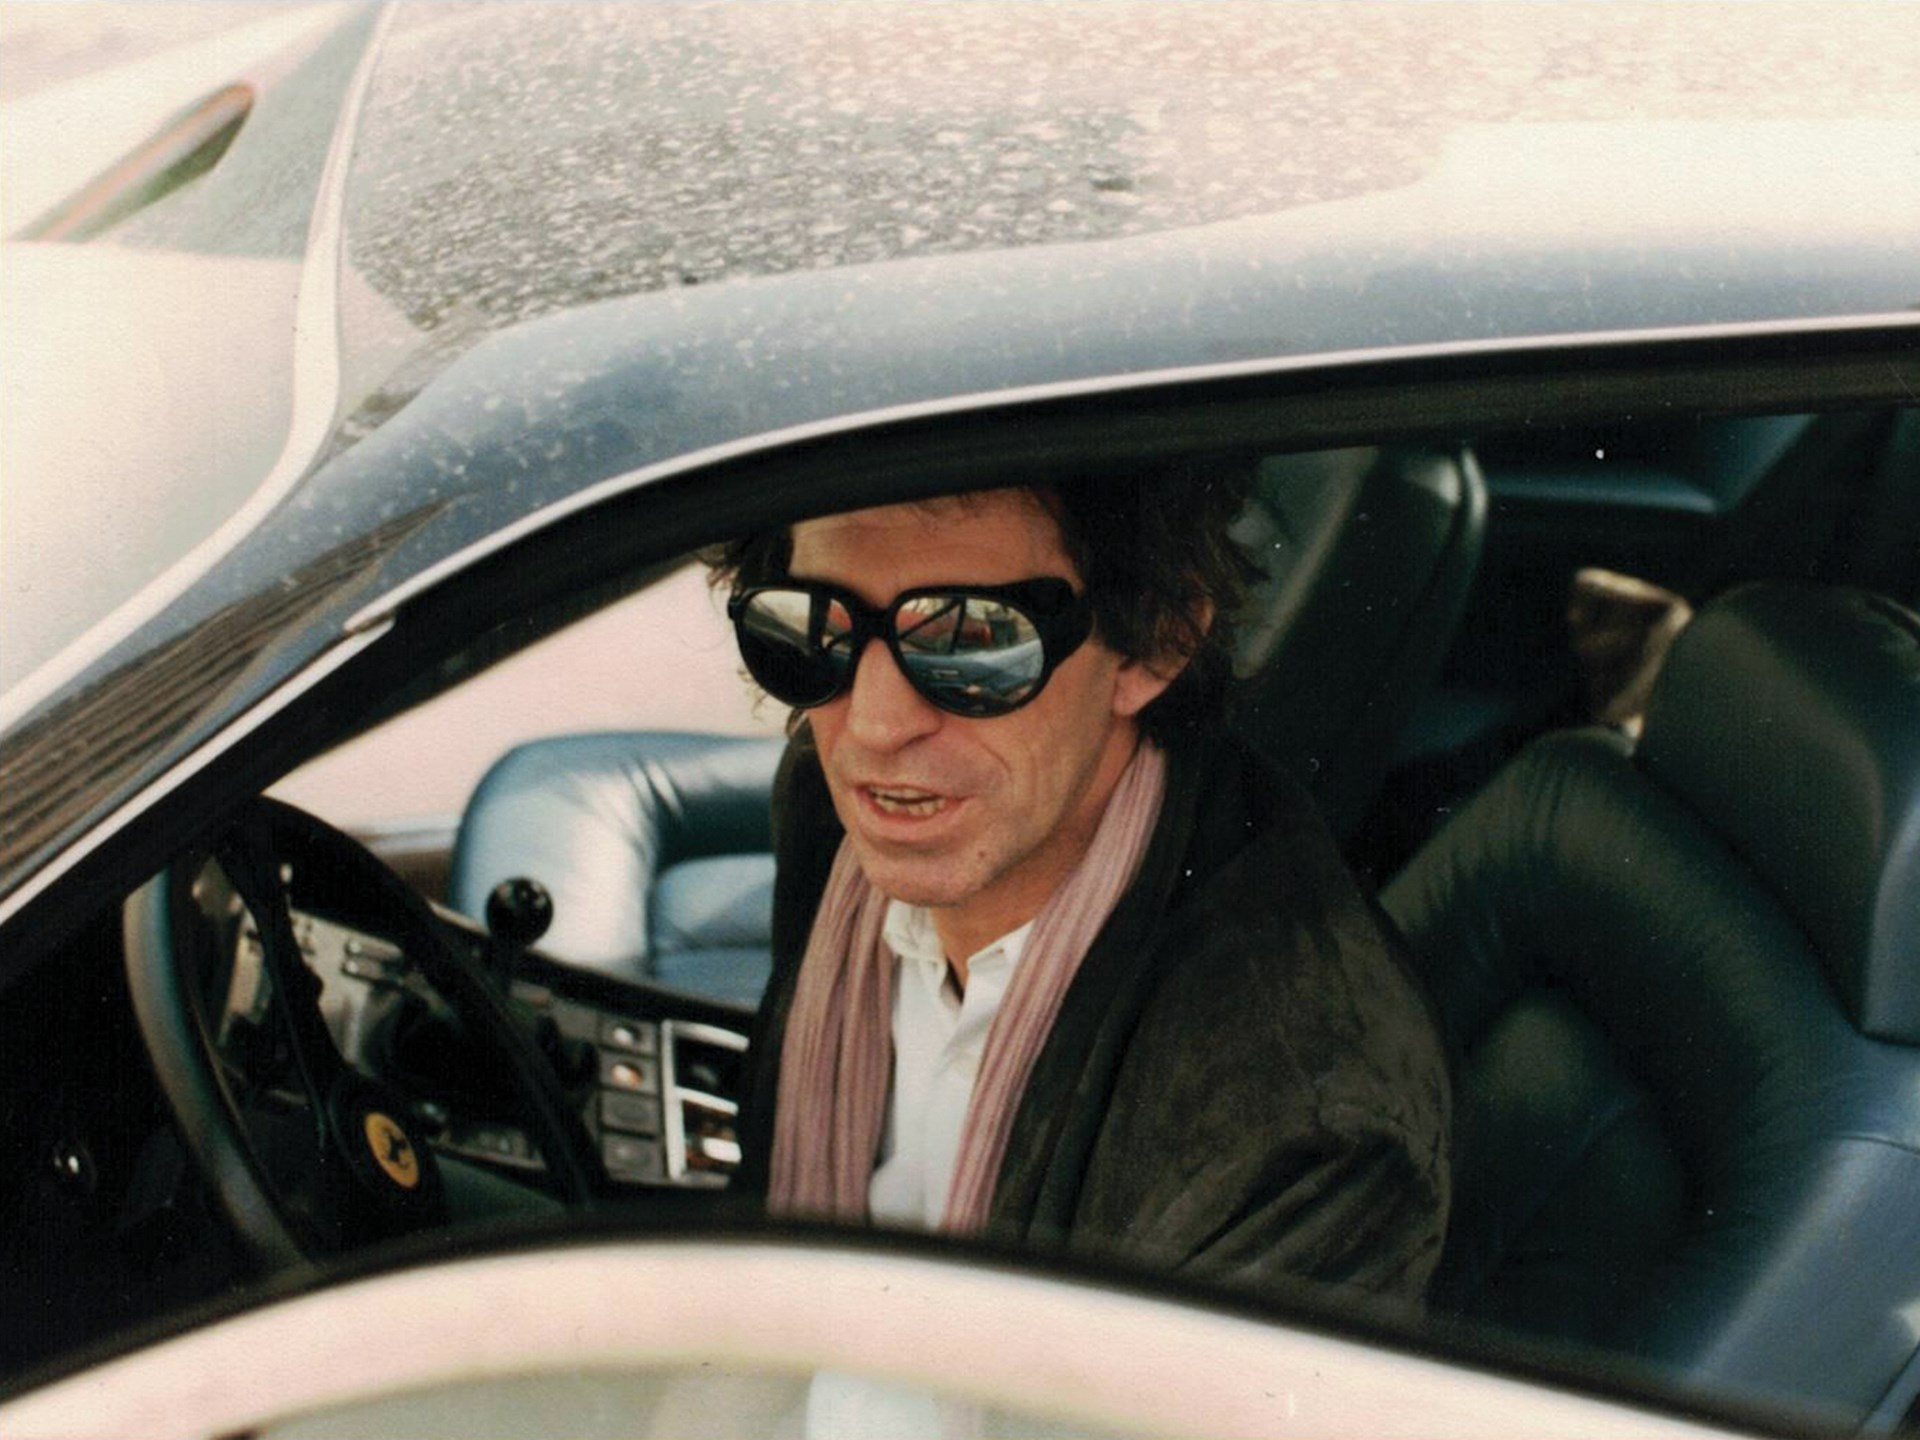 Keith Richards at the wheel of his new Ferrari 400i, which he received directly from the factory in the early 1980s.